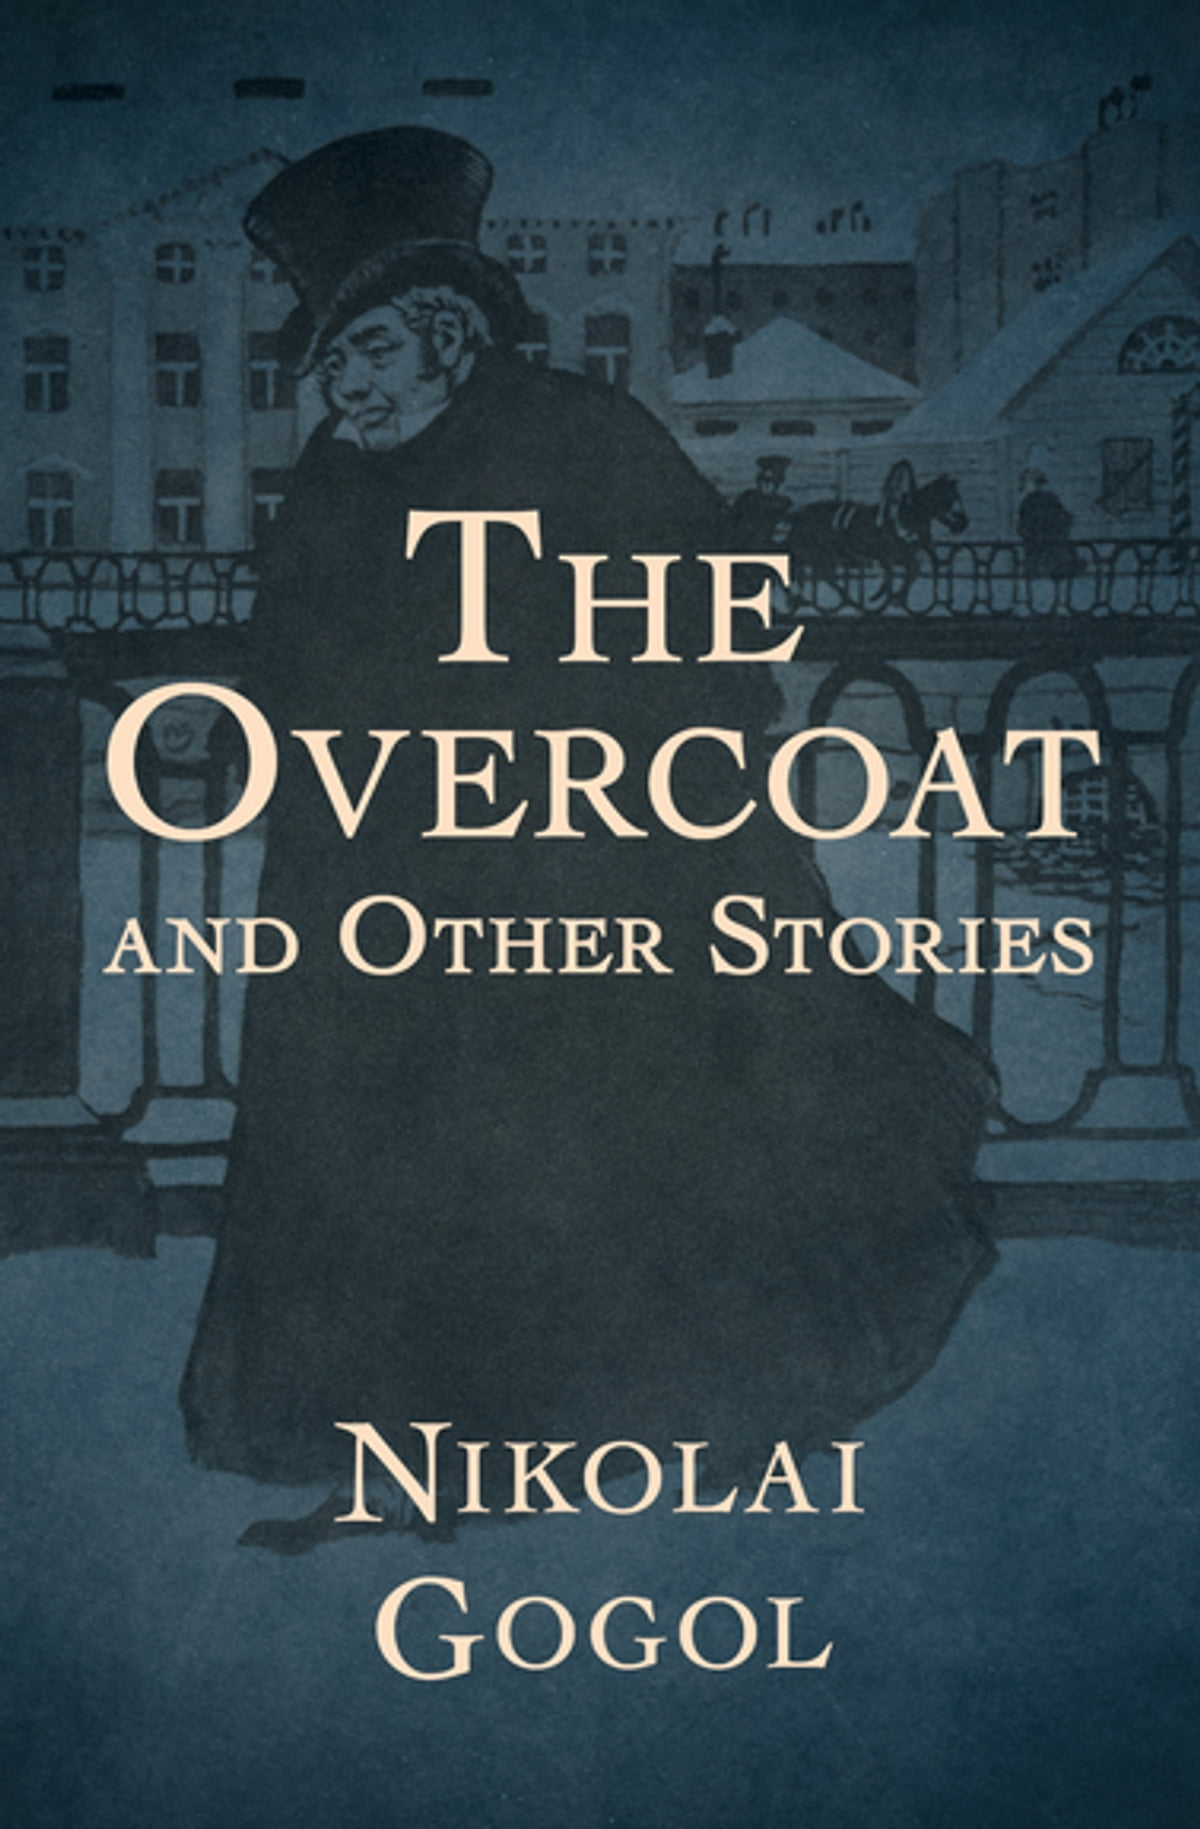 The Overcoat eBook by Nikolai Gogol - 9781504035439 | Rakuten Kobo